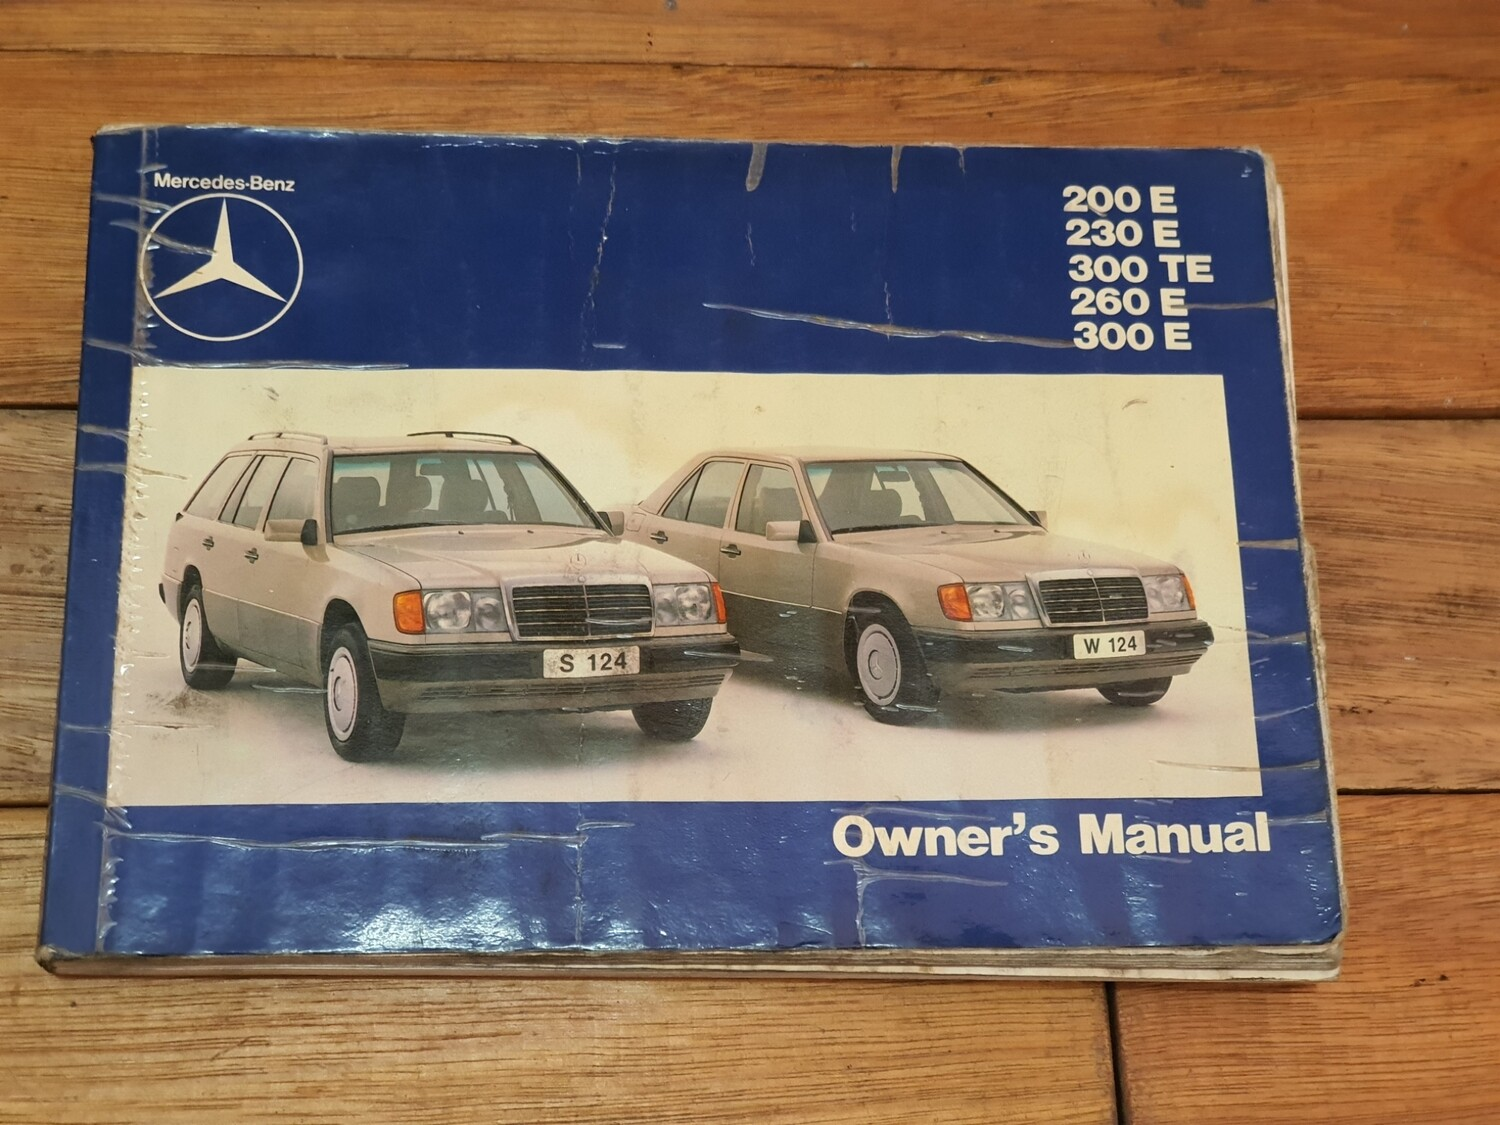 Mercedes-Benz Owners Manual (W124)